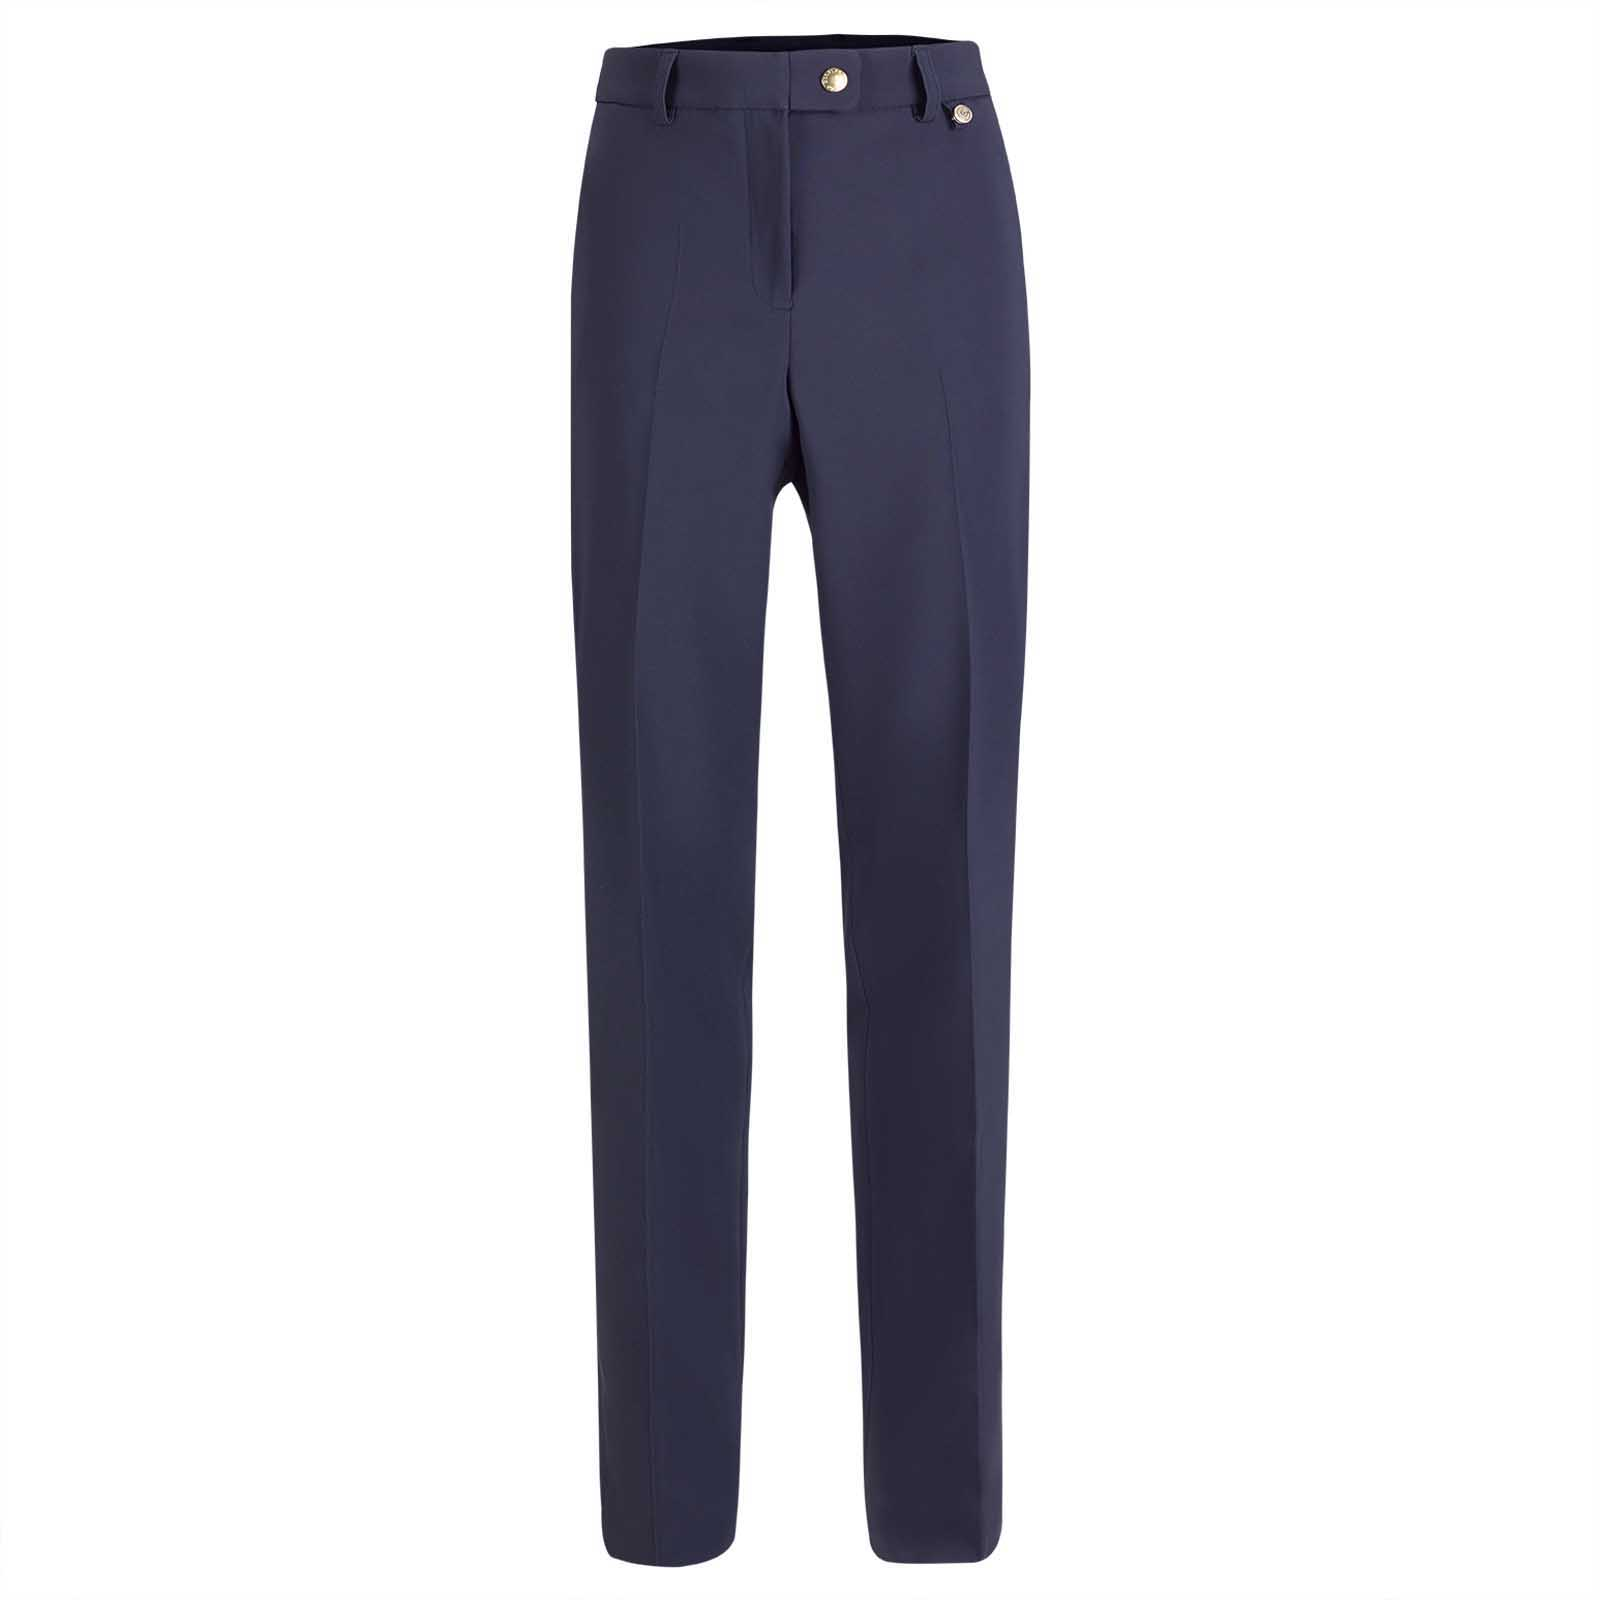 4-way stretch ladies' Performance golf trousers